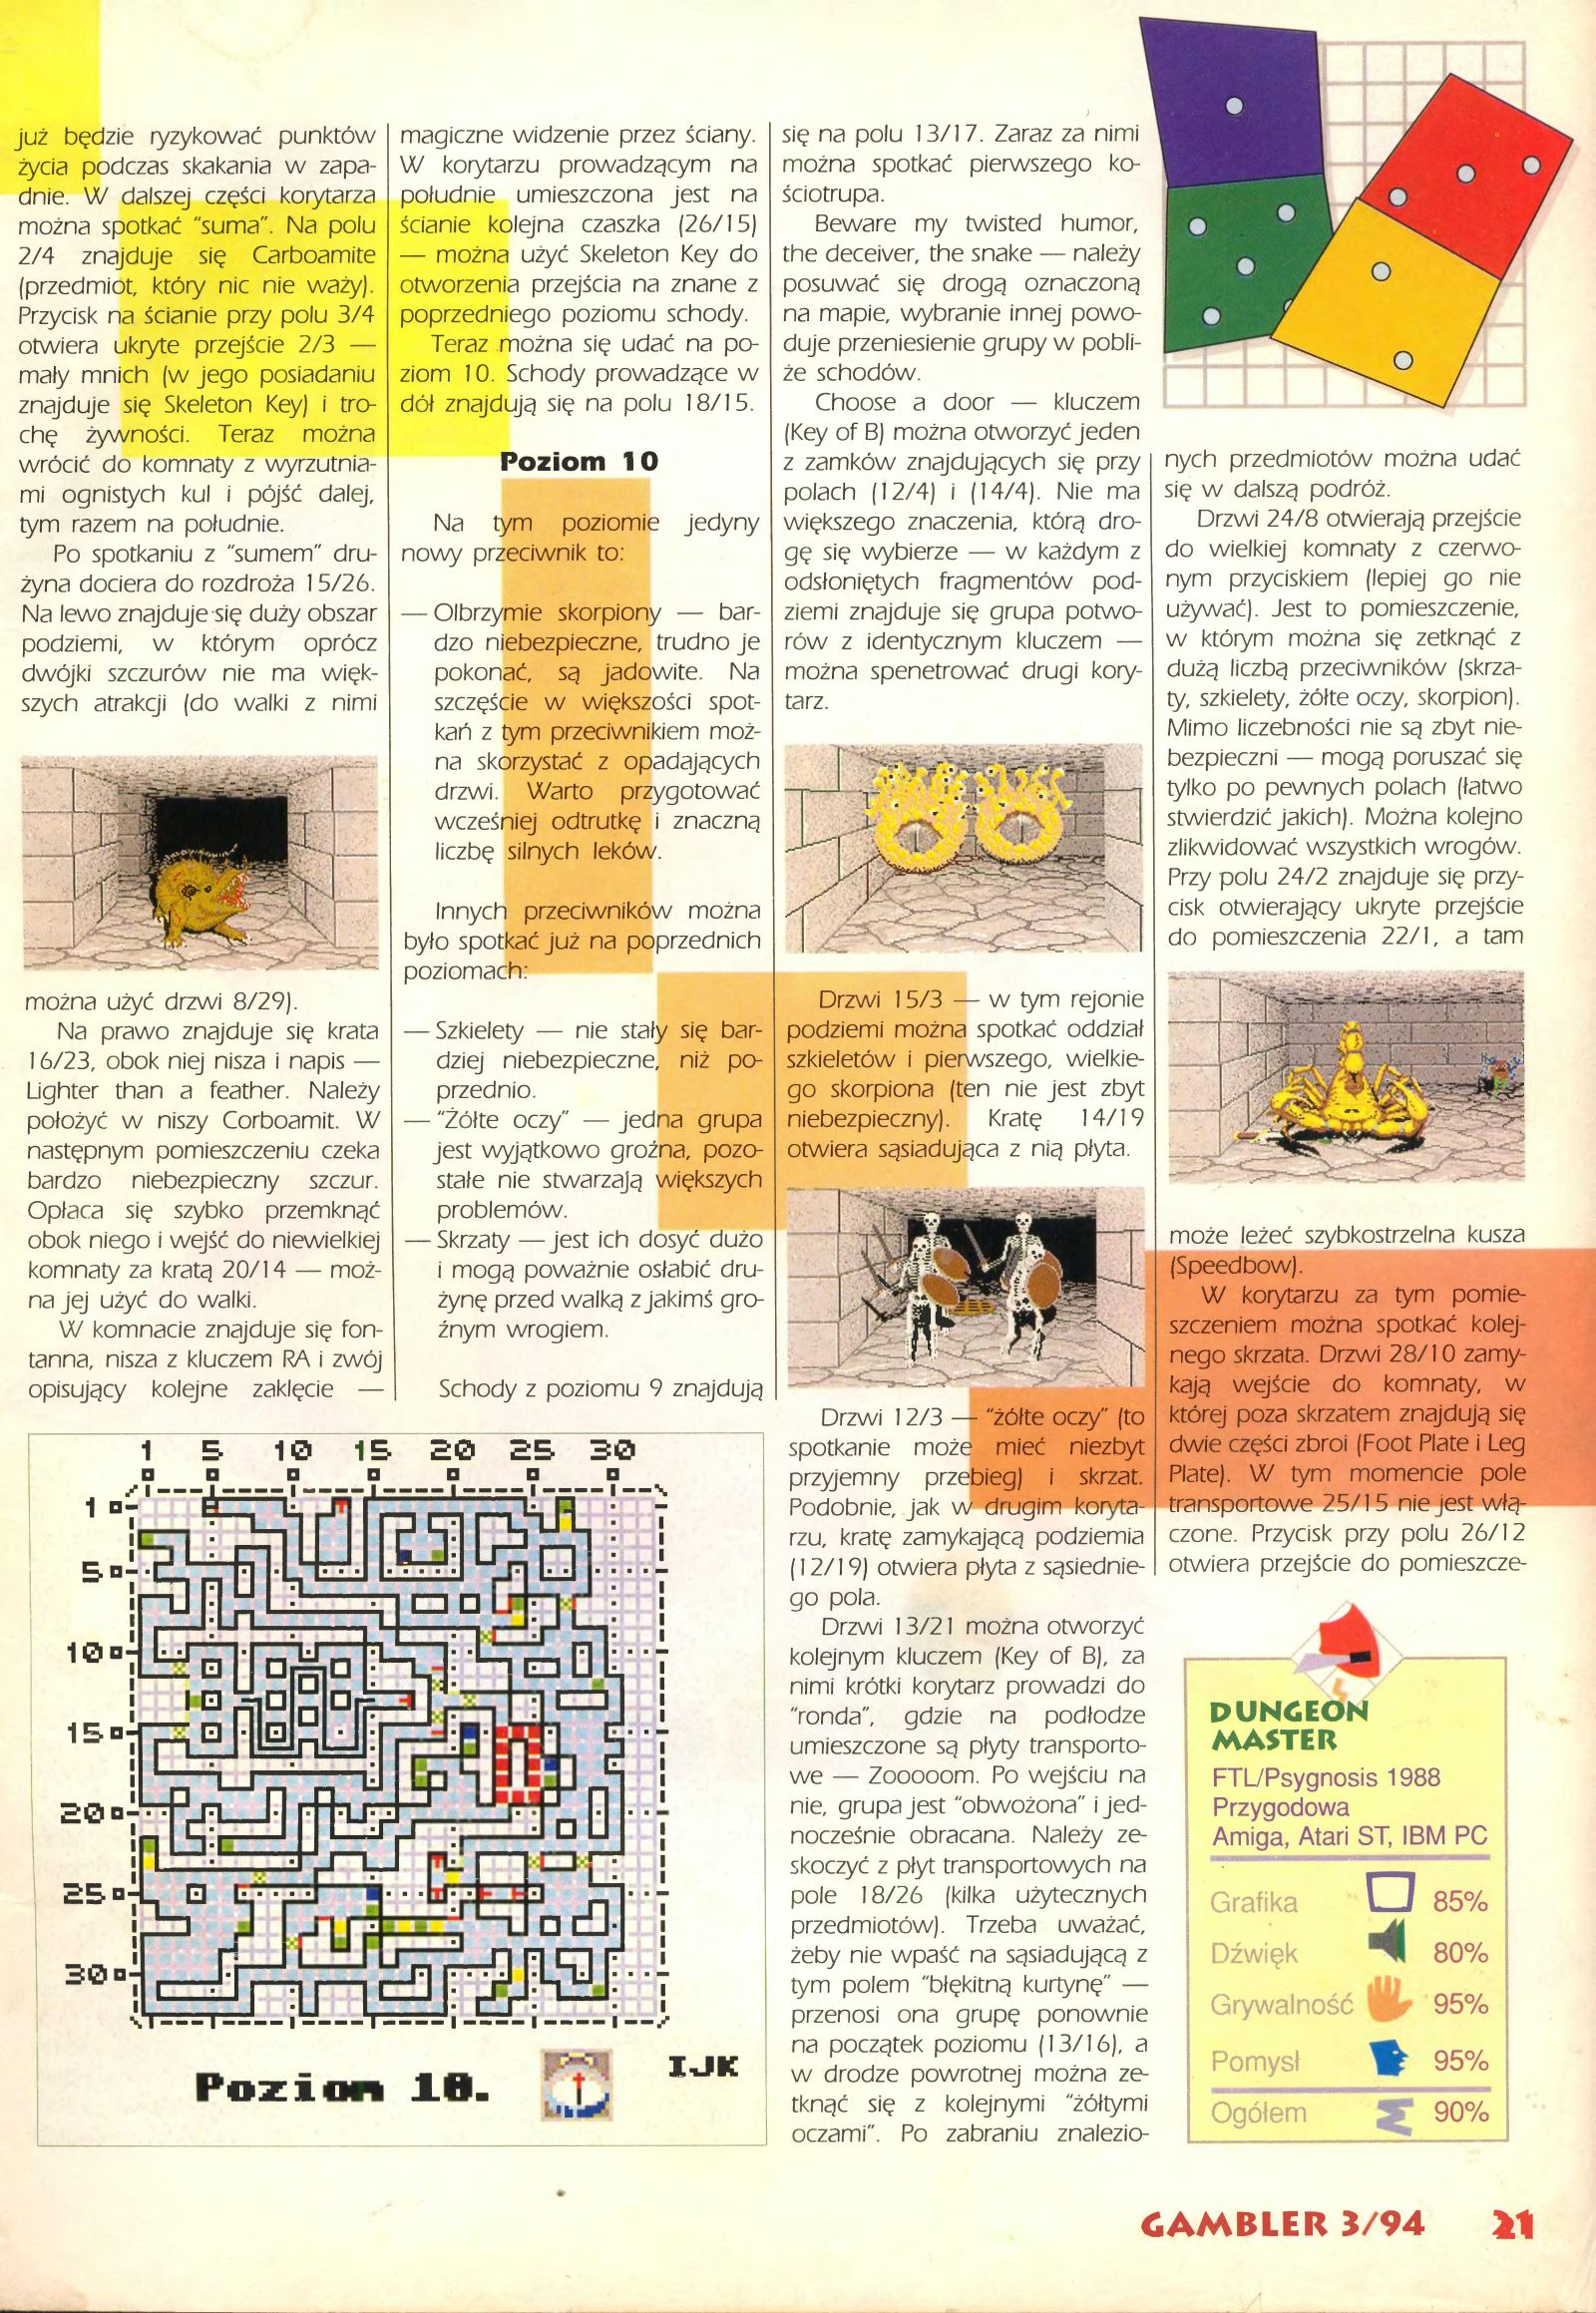 Dungeon Master Guide published in Polish magazine 'Gambler', March 1994, Page 21